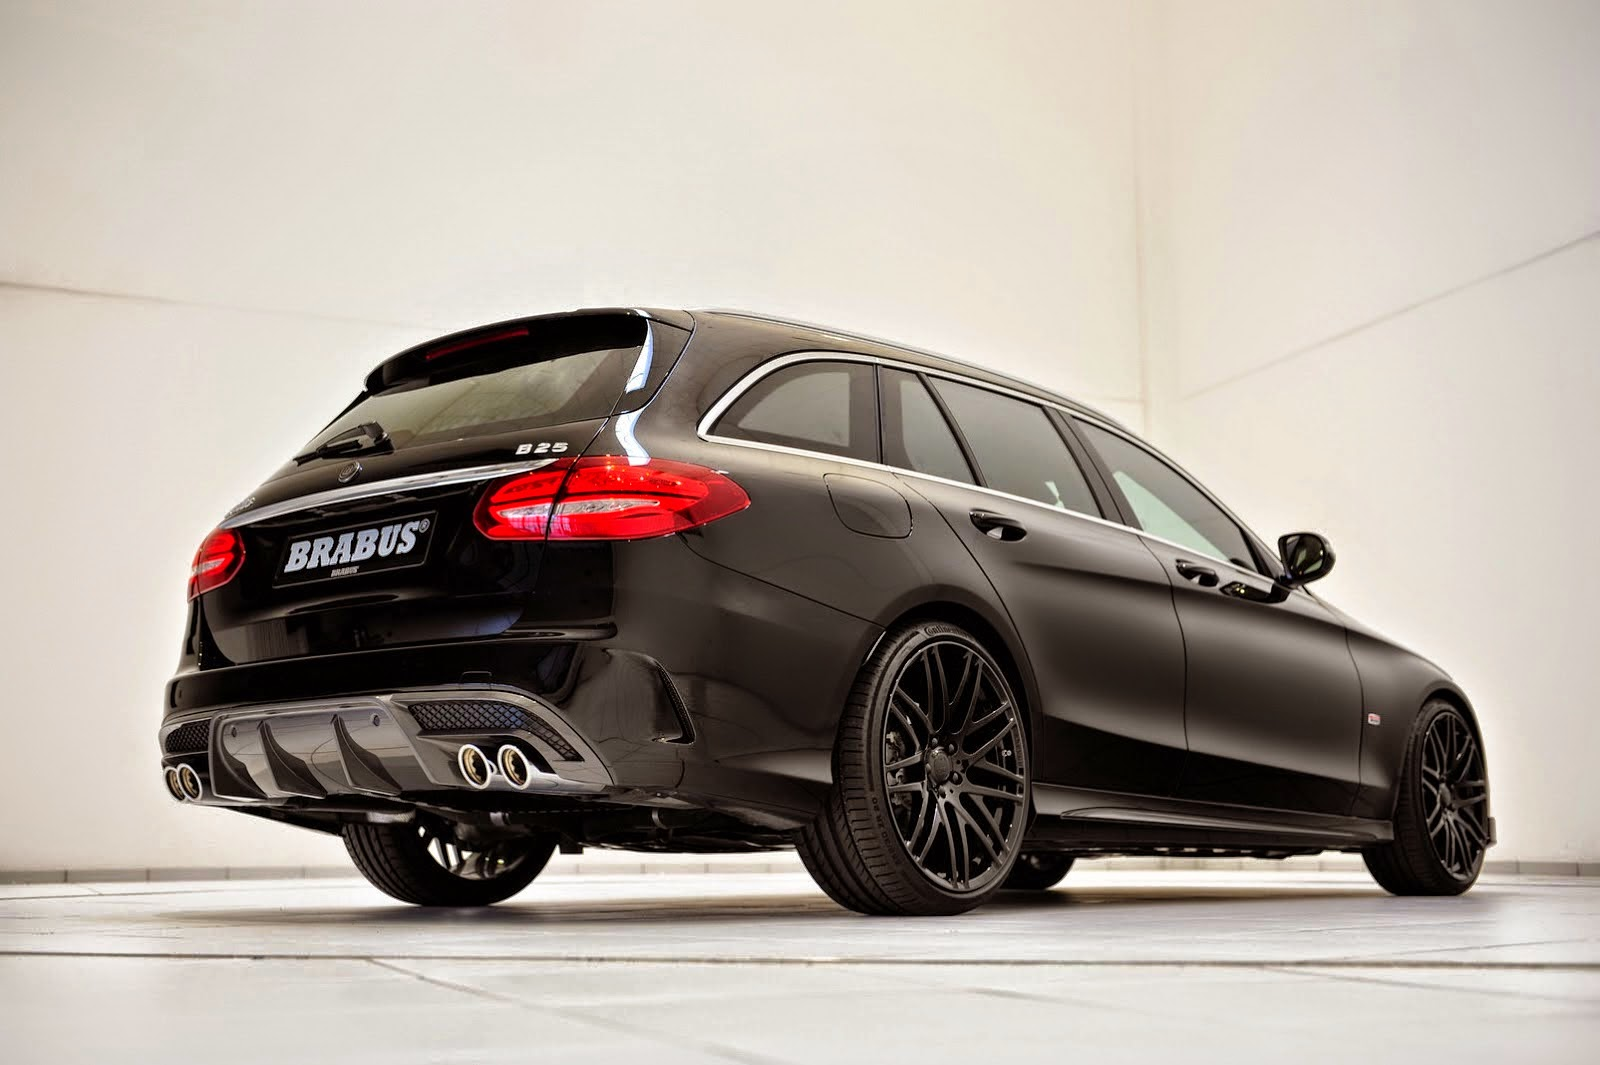 brabus b25 based on mercedes benz s205 c class benztuning. Black Bedroom Furniture Sets. Home Design Ideas